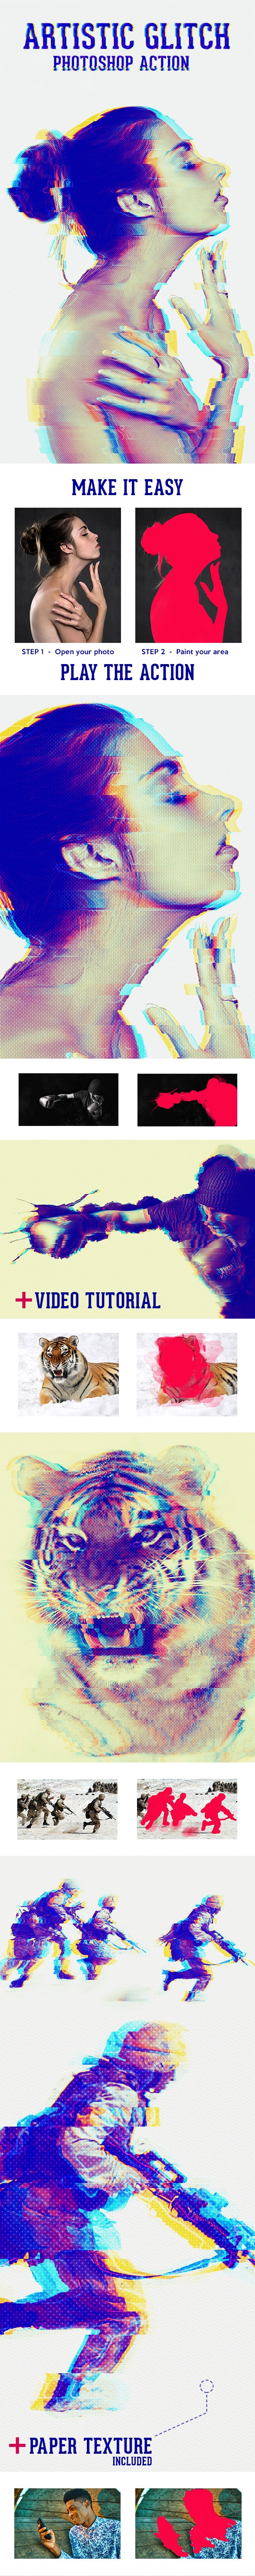 Artistic Glitch Photoshop Action - Photo Effects Actions